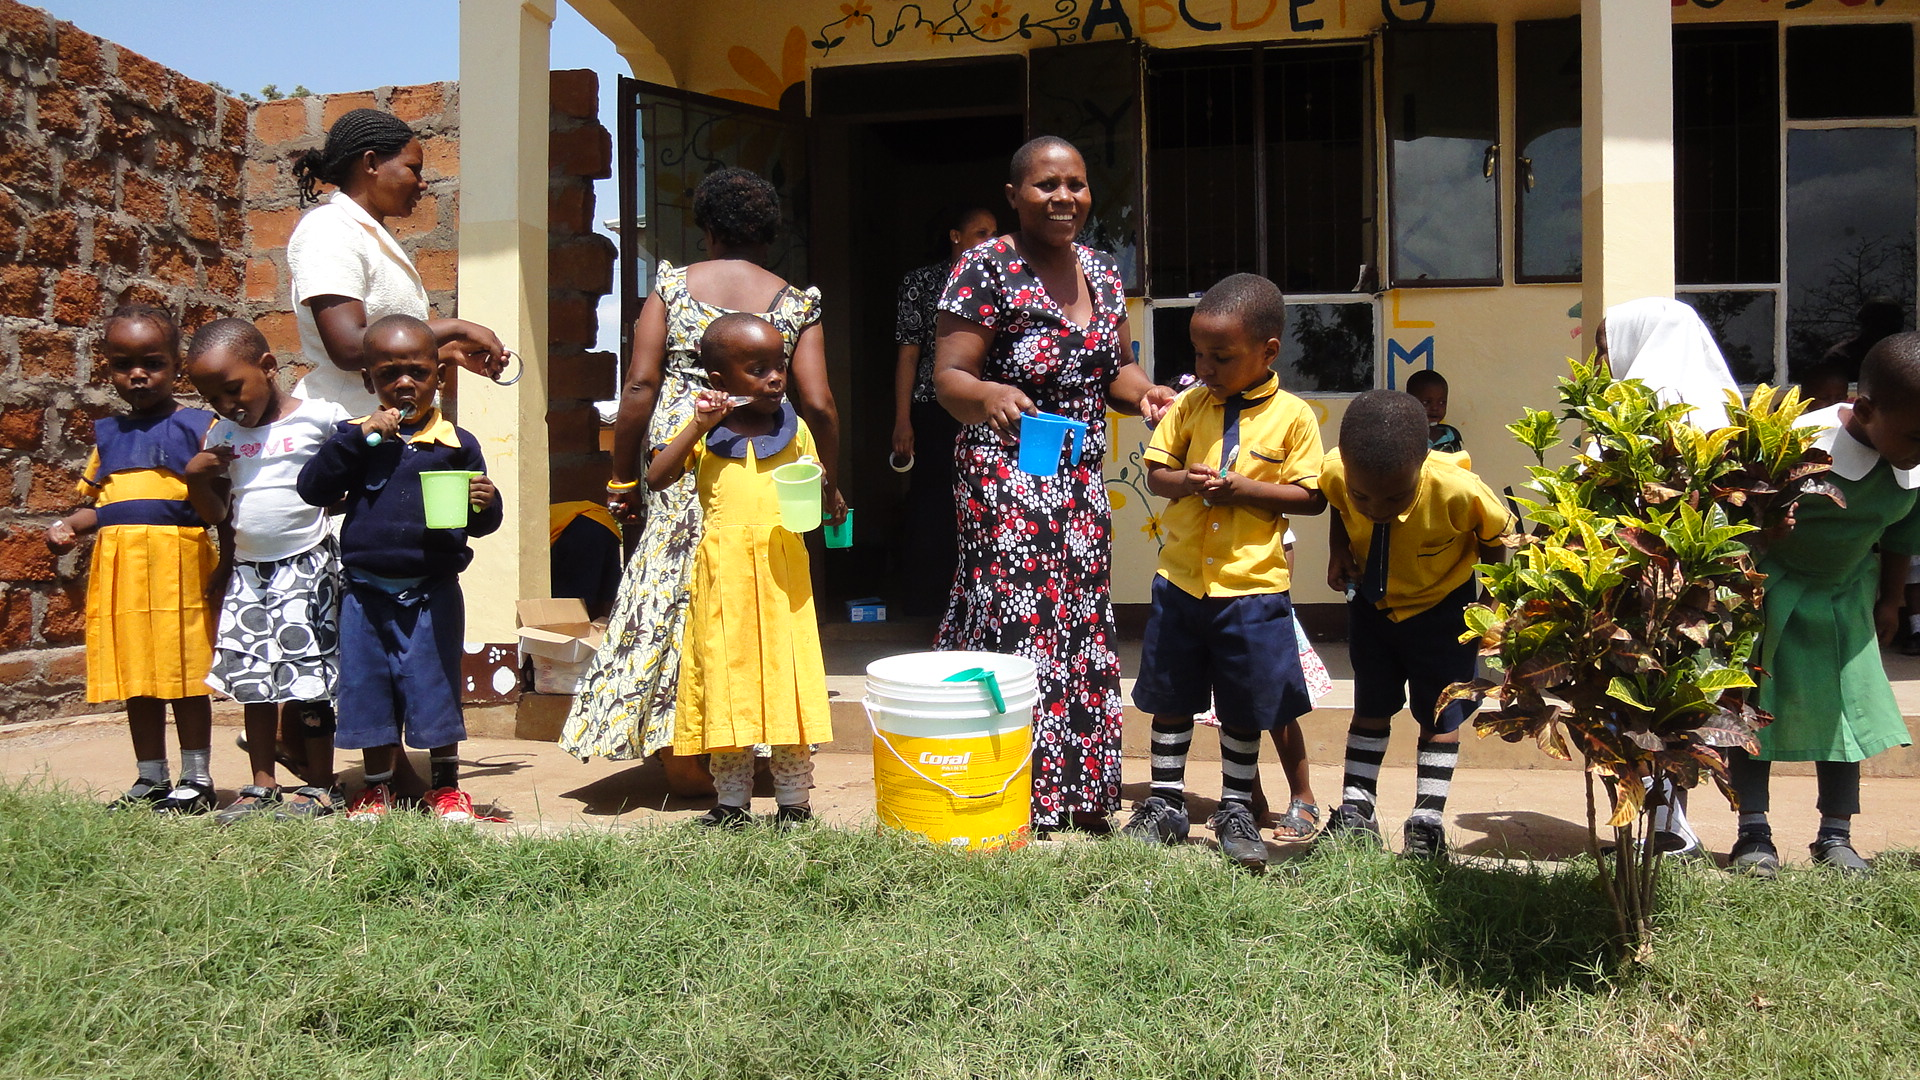 TAFCOM children brushing and rinsing at the school.